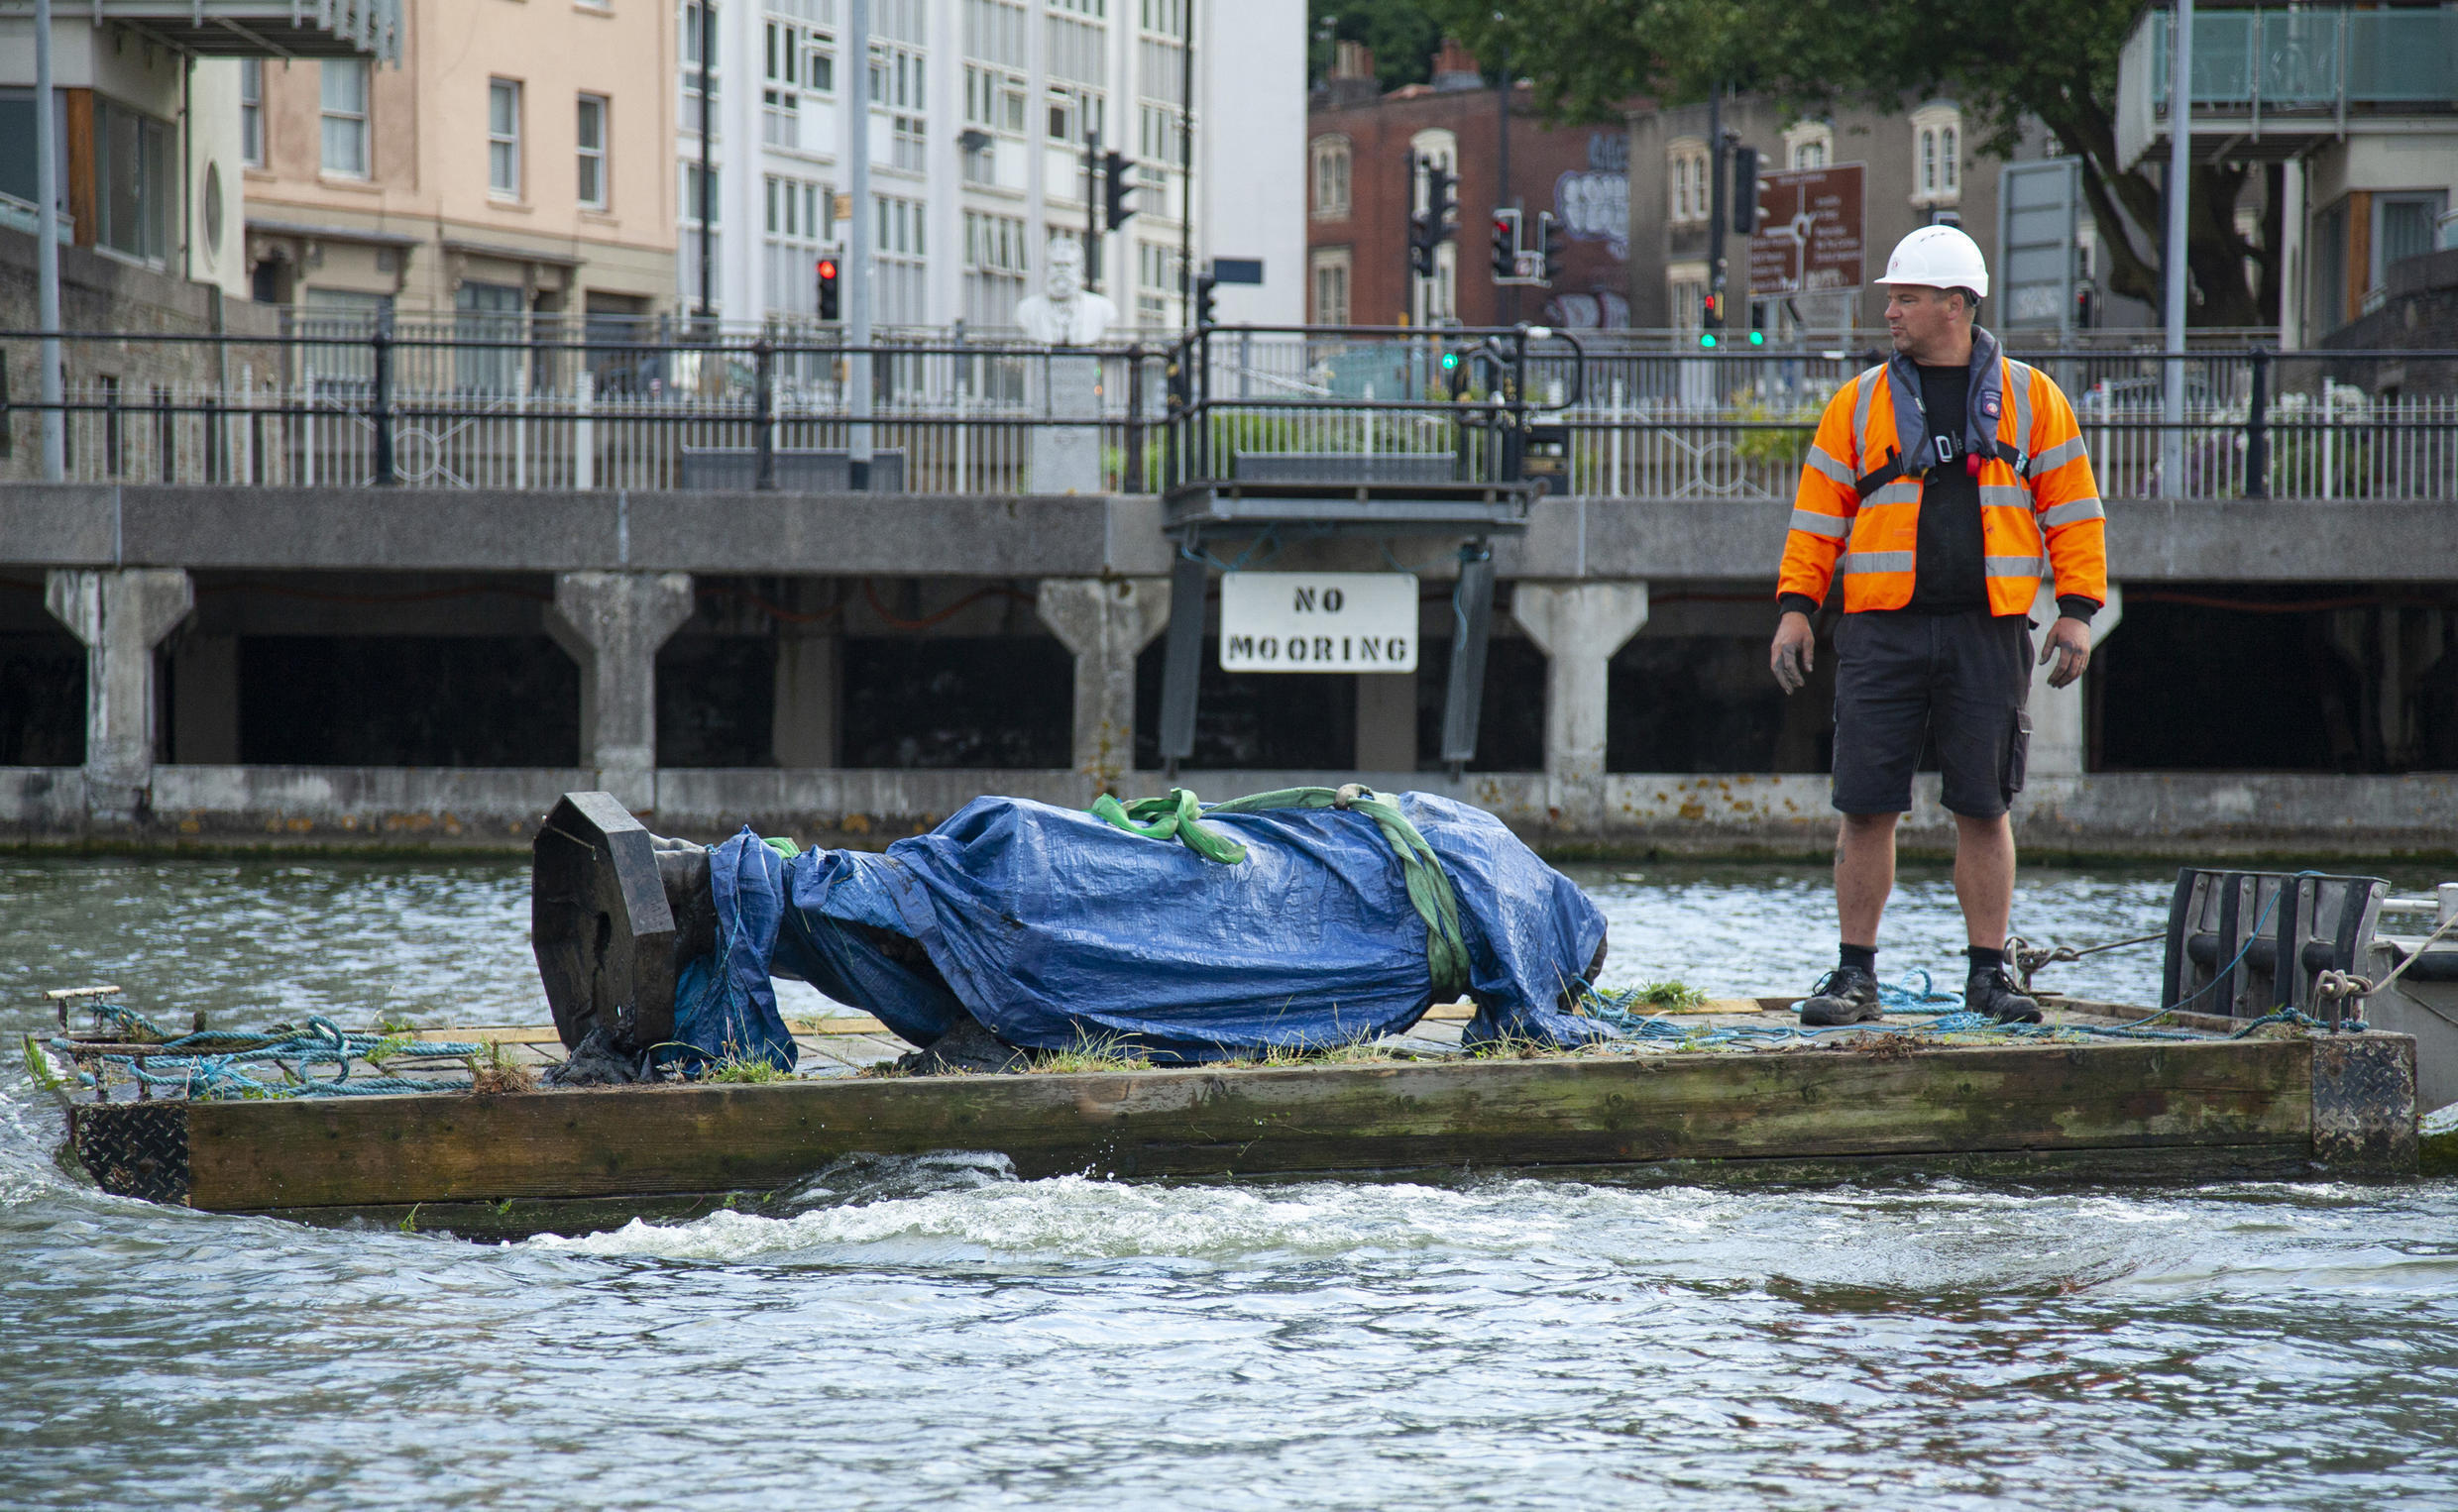 Bristol authorities fished the statue of slave trader and philanthropist Edward Colston out of the local harbour Thursday